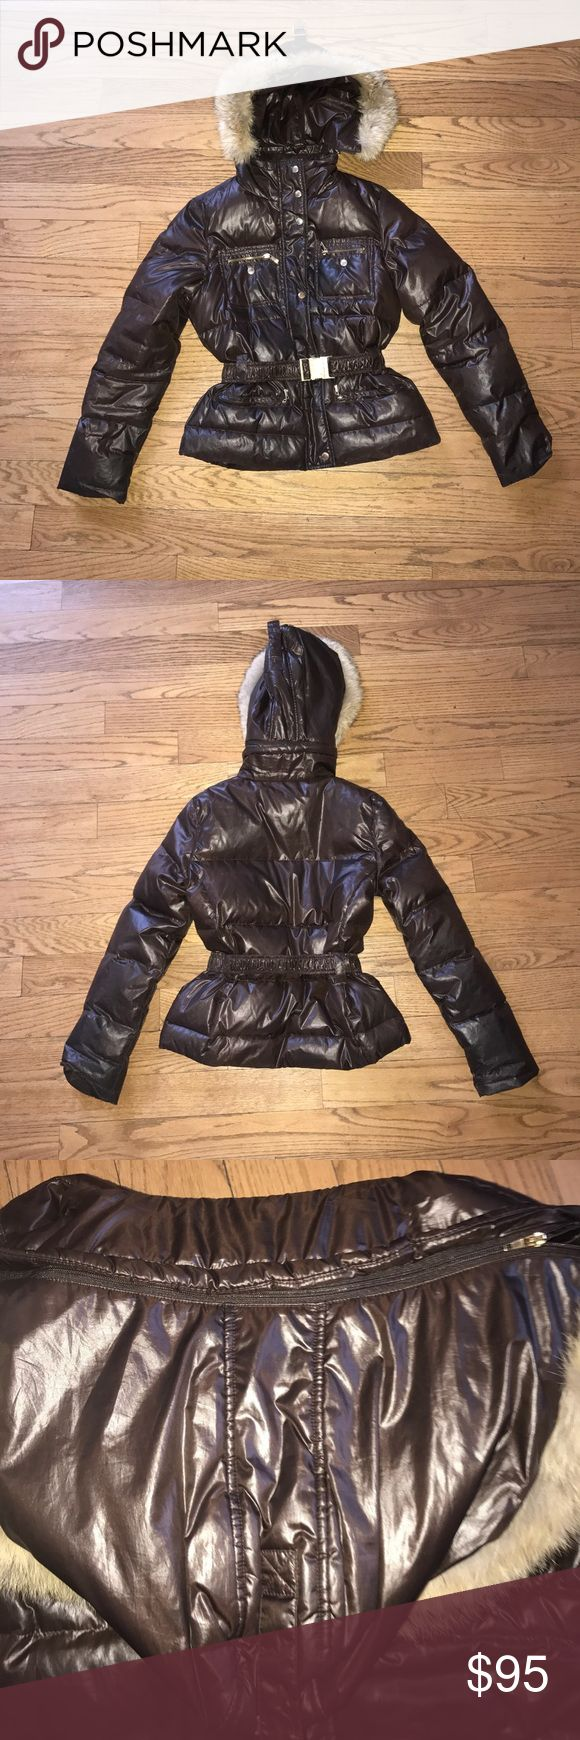 Brown Michael Kors Puffer Coat W/ fur Excellent condition. Perfect coat for the Winter with fur. Comes with a belt and hood is detachable. Lots of pockets for storage. Michael Kors Jackets & Coats Puffers